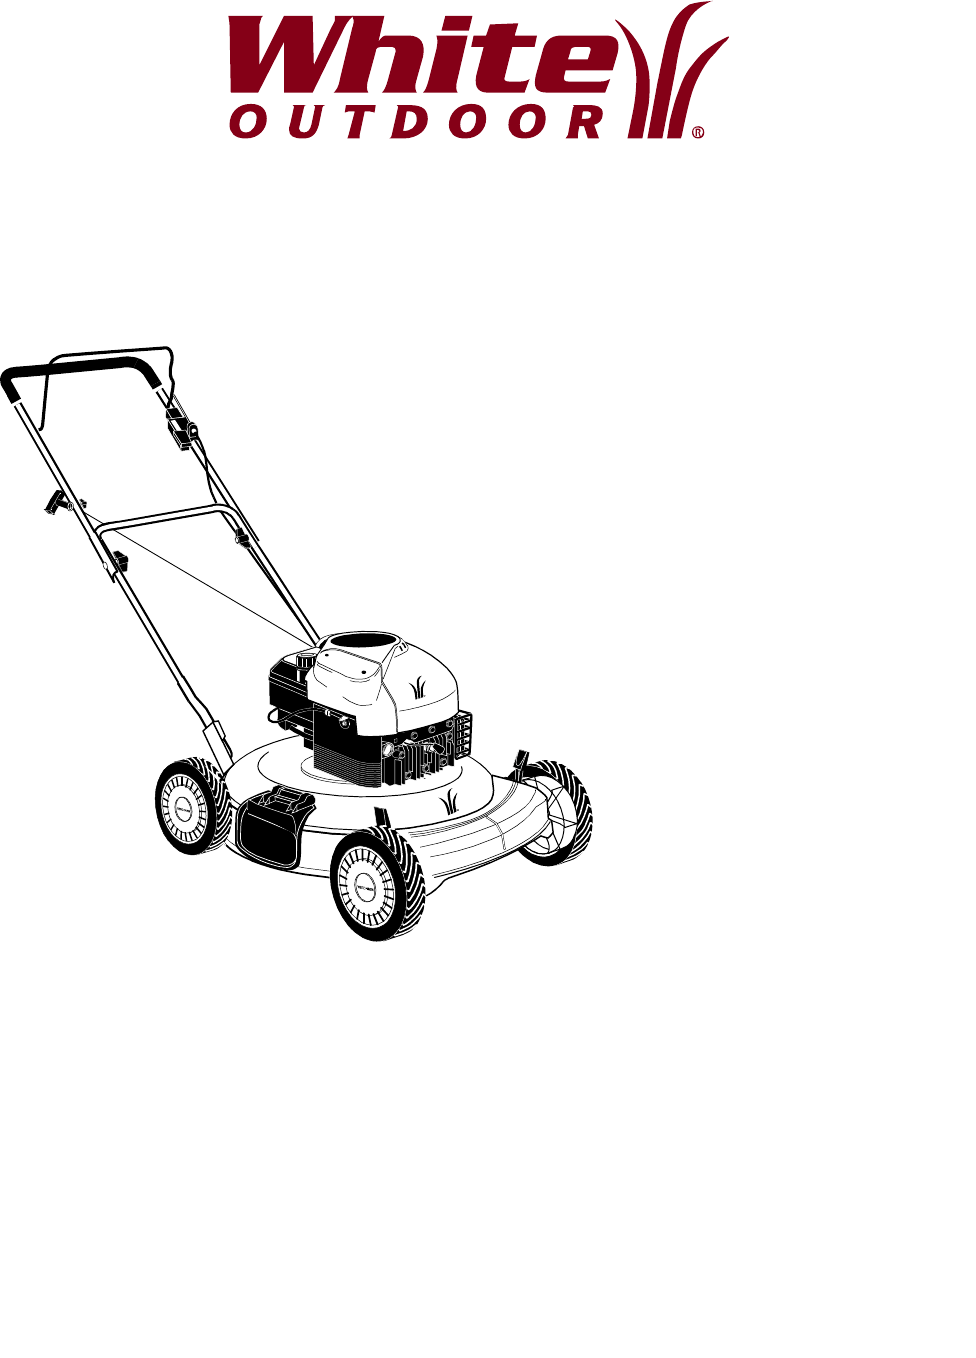 White Outdoor Lawn Mower Manual